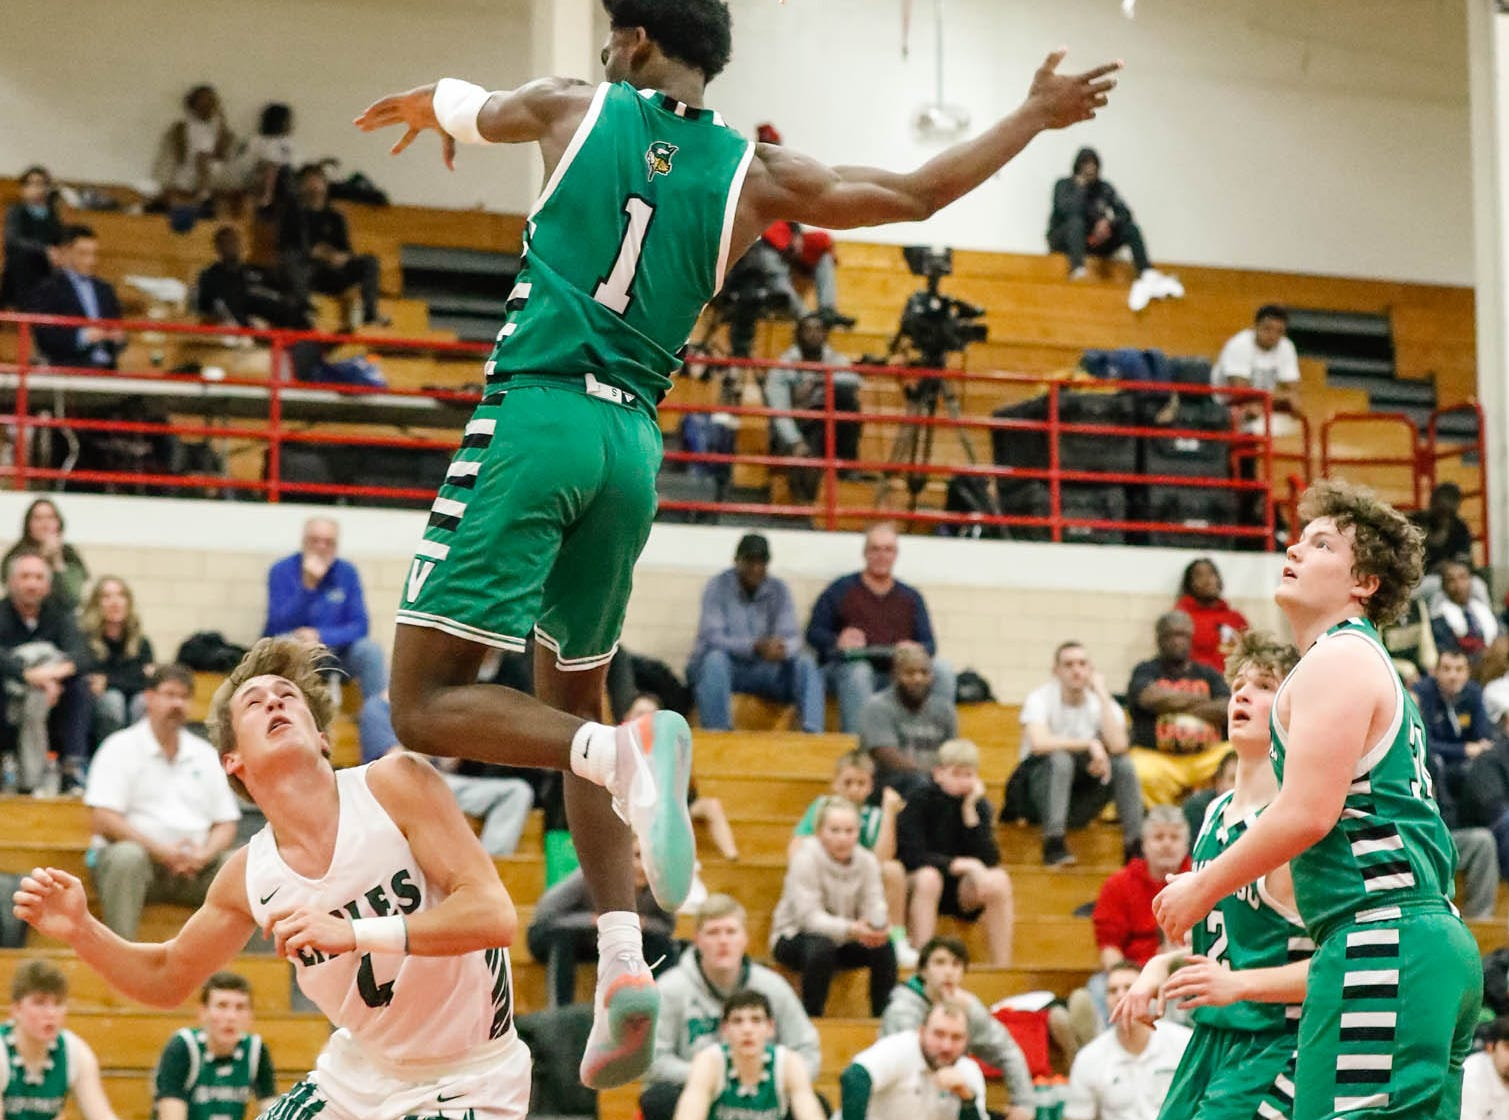 Valparaiso High School's Brandon Newman (1) leaps to block a shot and ends up in the stands during a game between Zionsville Community High School, and Valparaiso High School, in the 4th Annual Manuel Extravaganza Showcase held at Emmerich Manuel High School in Indianapolis on Saturday, Dec. 22, 2018.